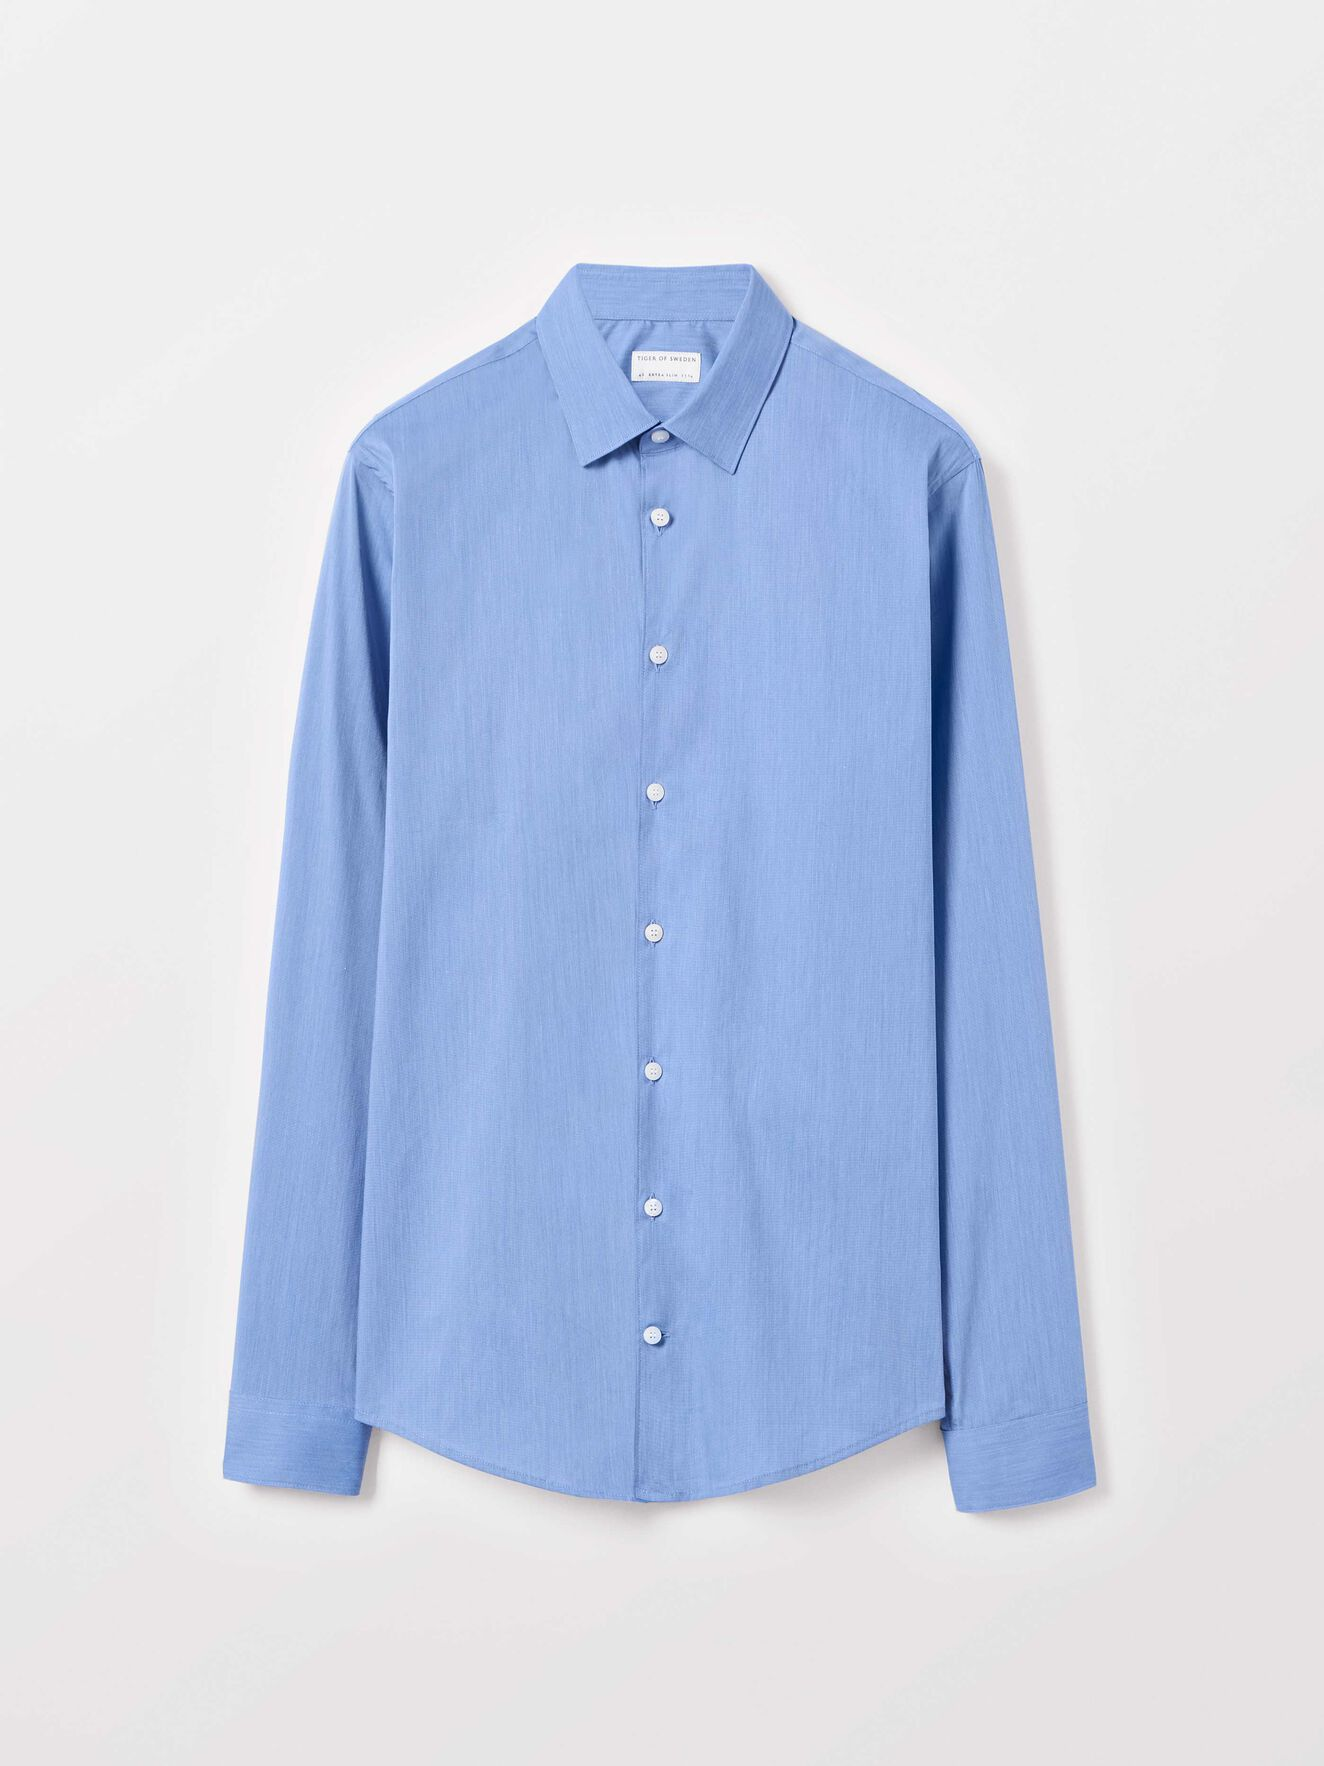 Filbrodie Shirt in Light blue from Tiger of Sweden